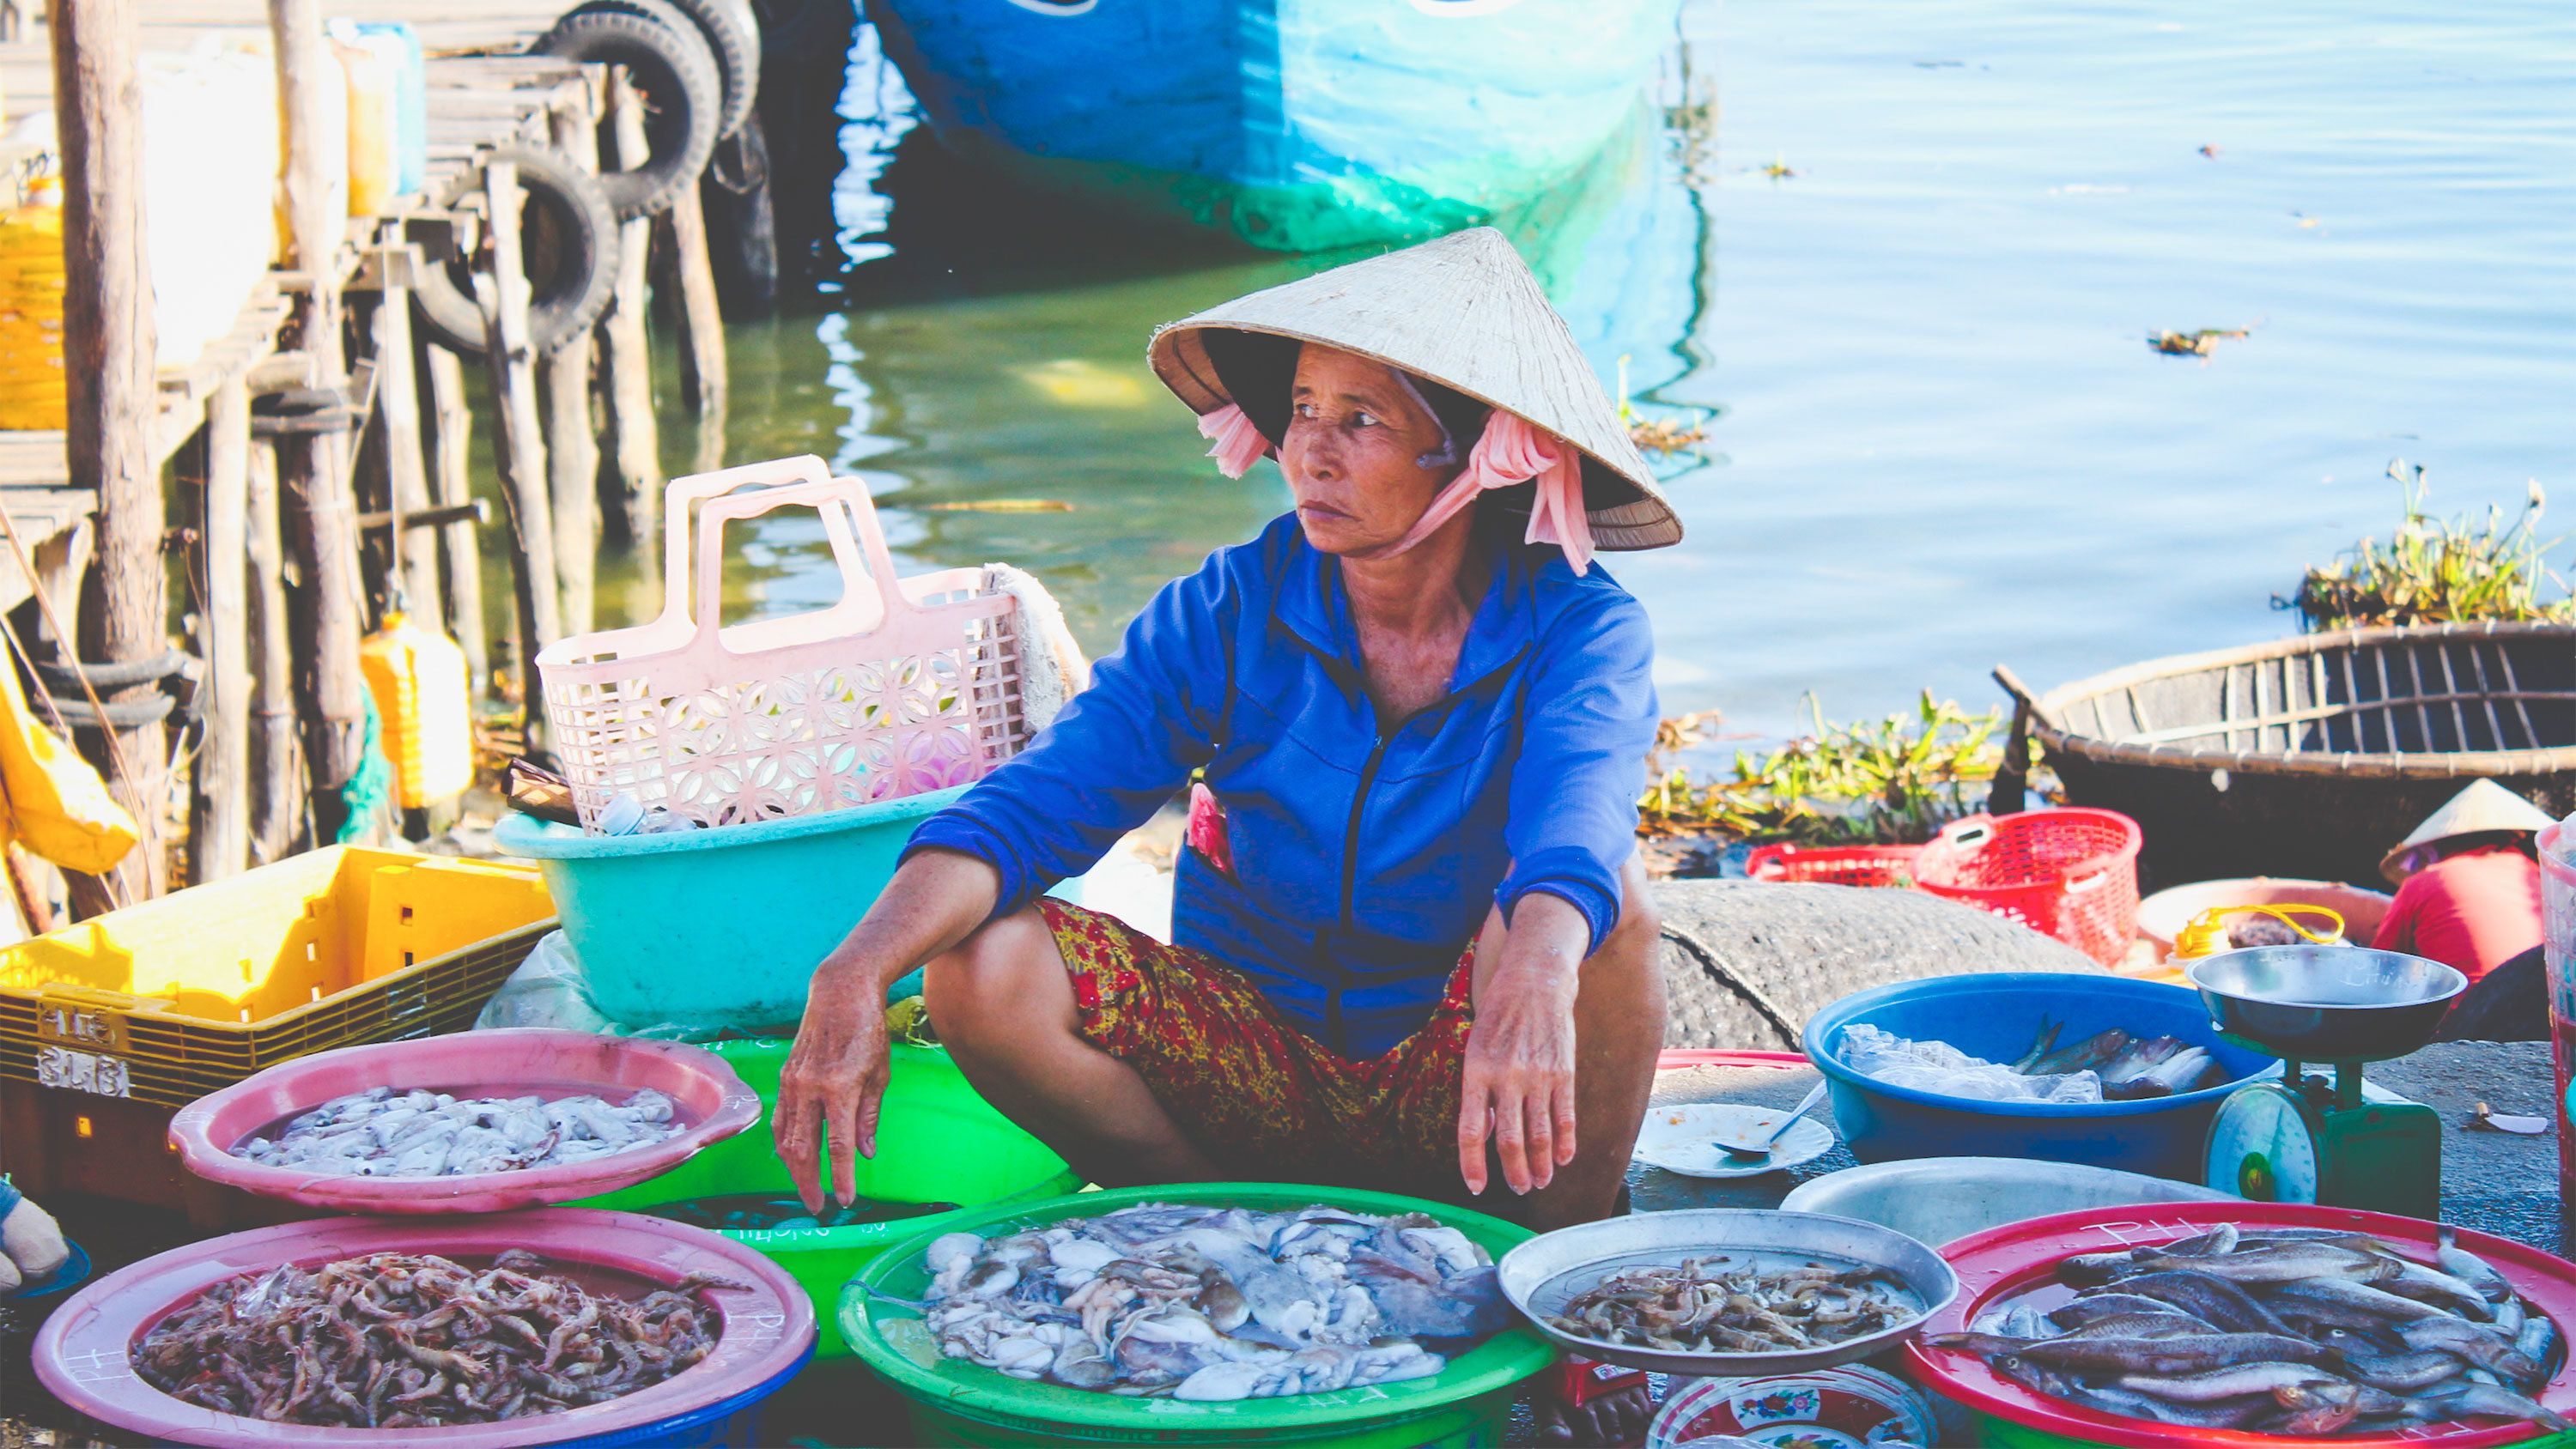 Market in the countryside of Hoi An